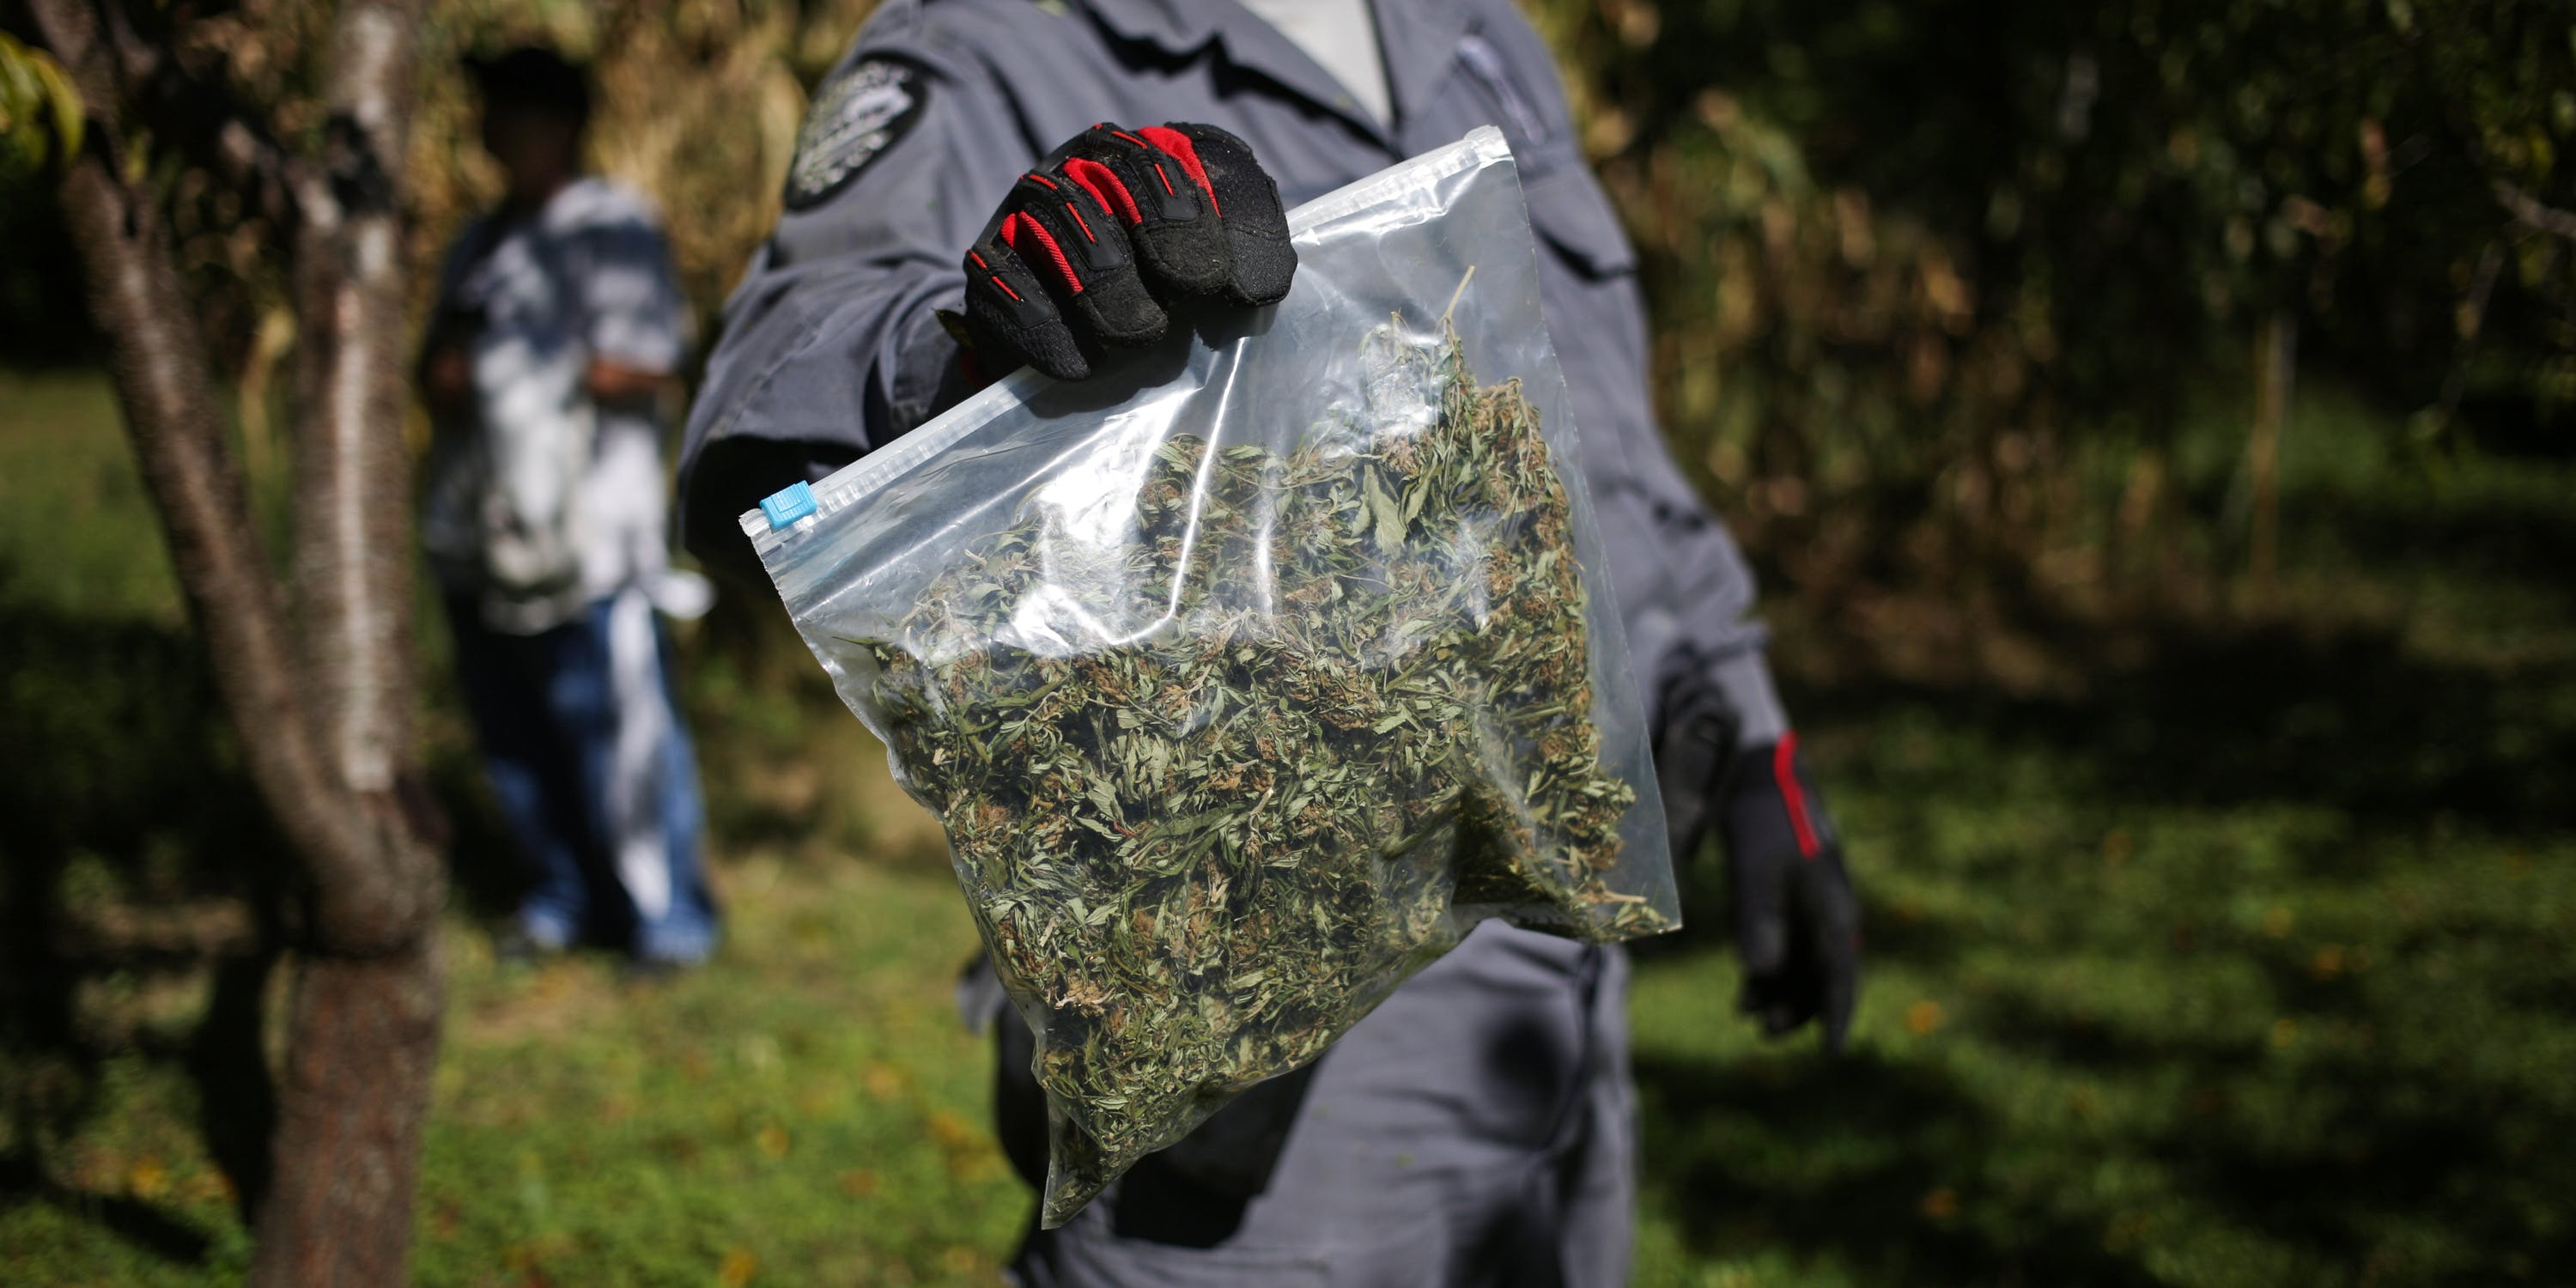 police officer with a bag of marijuana